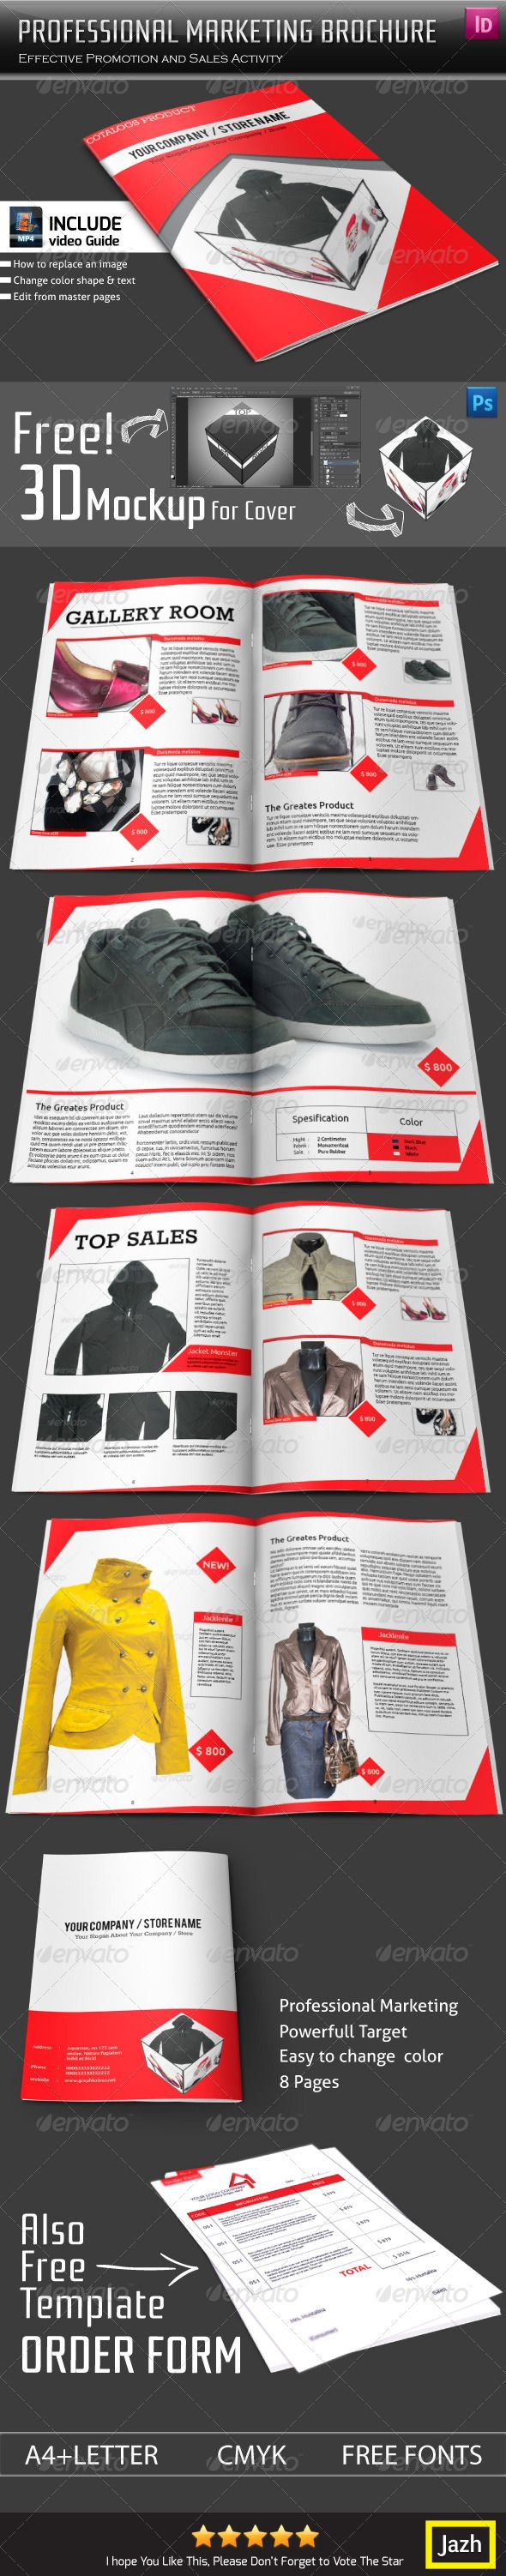 free indesign brochure templates cs6 - 86 best images about print templates on pinterest fonts